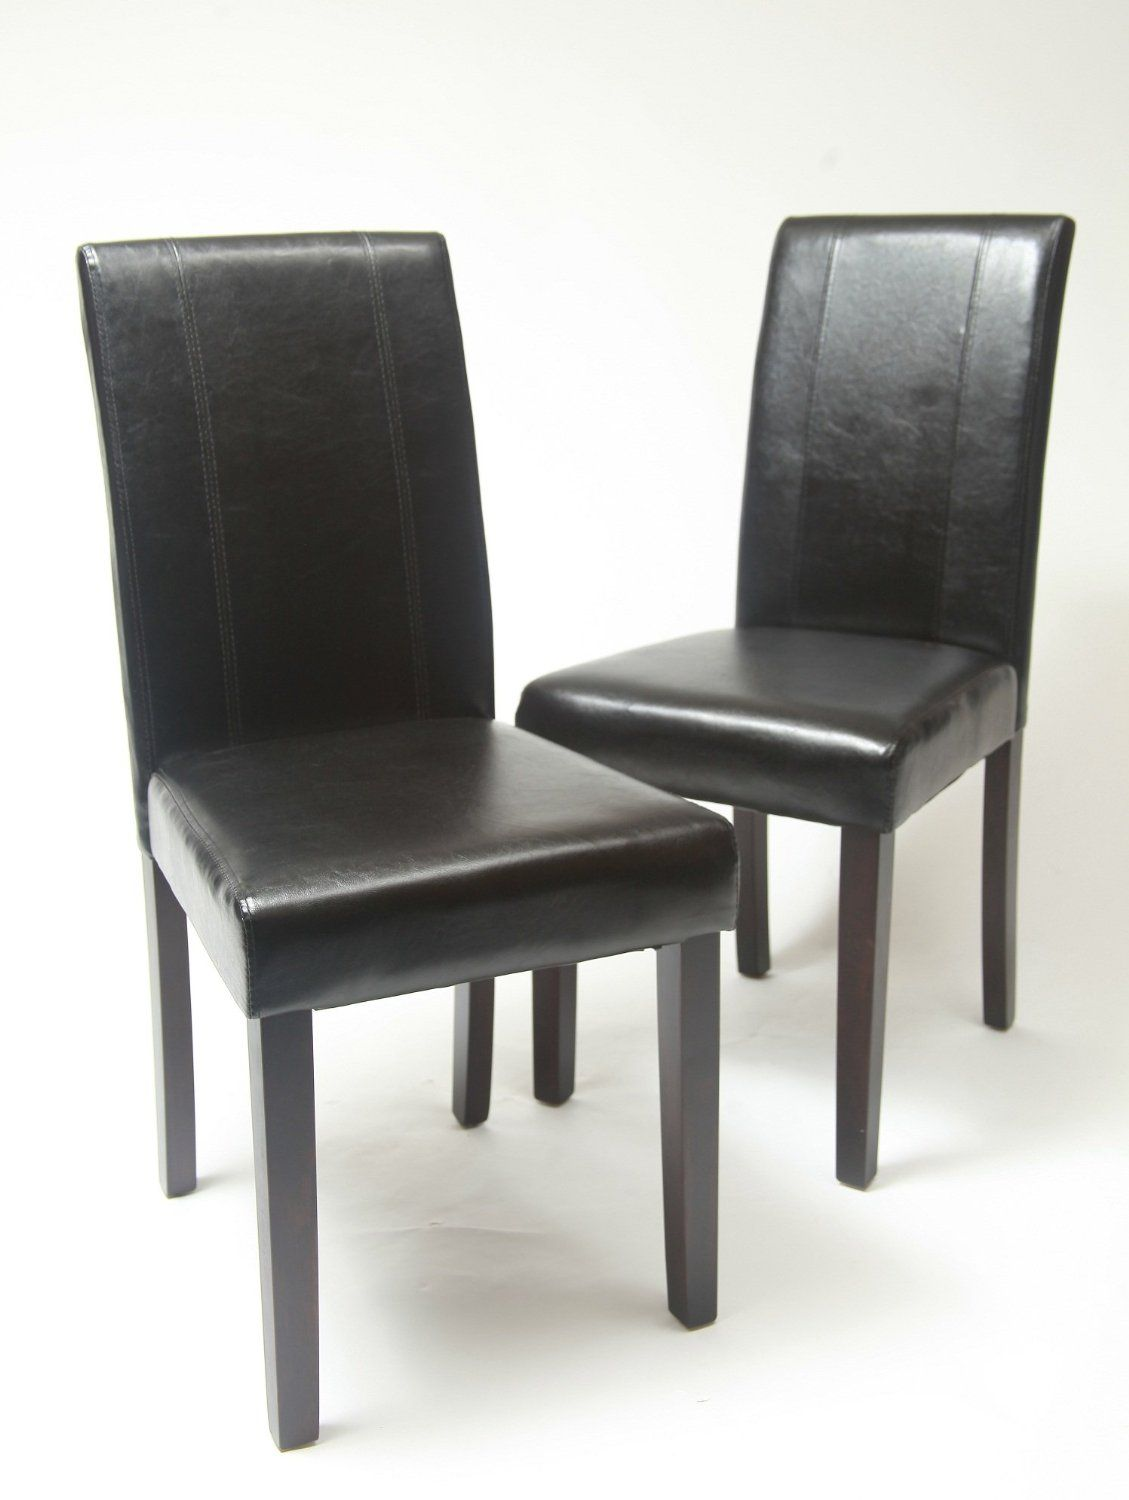 10 Big Kitchen Chairs For Heavy People  Black leather dining